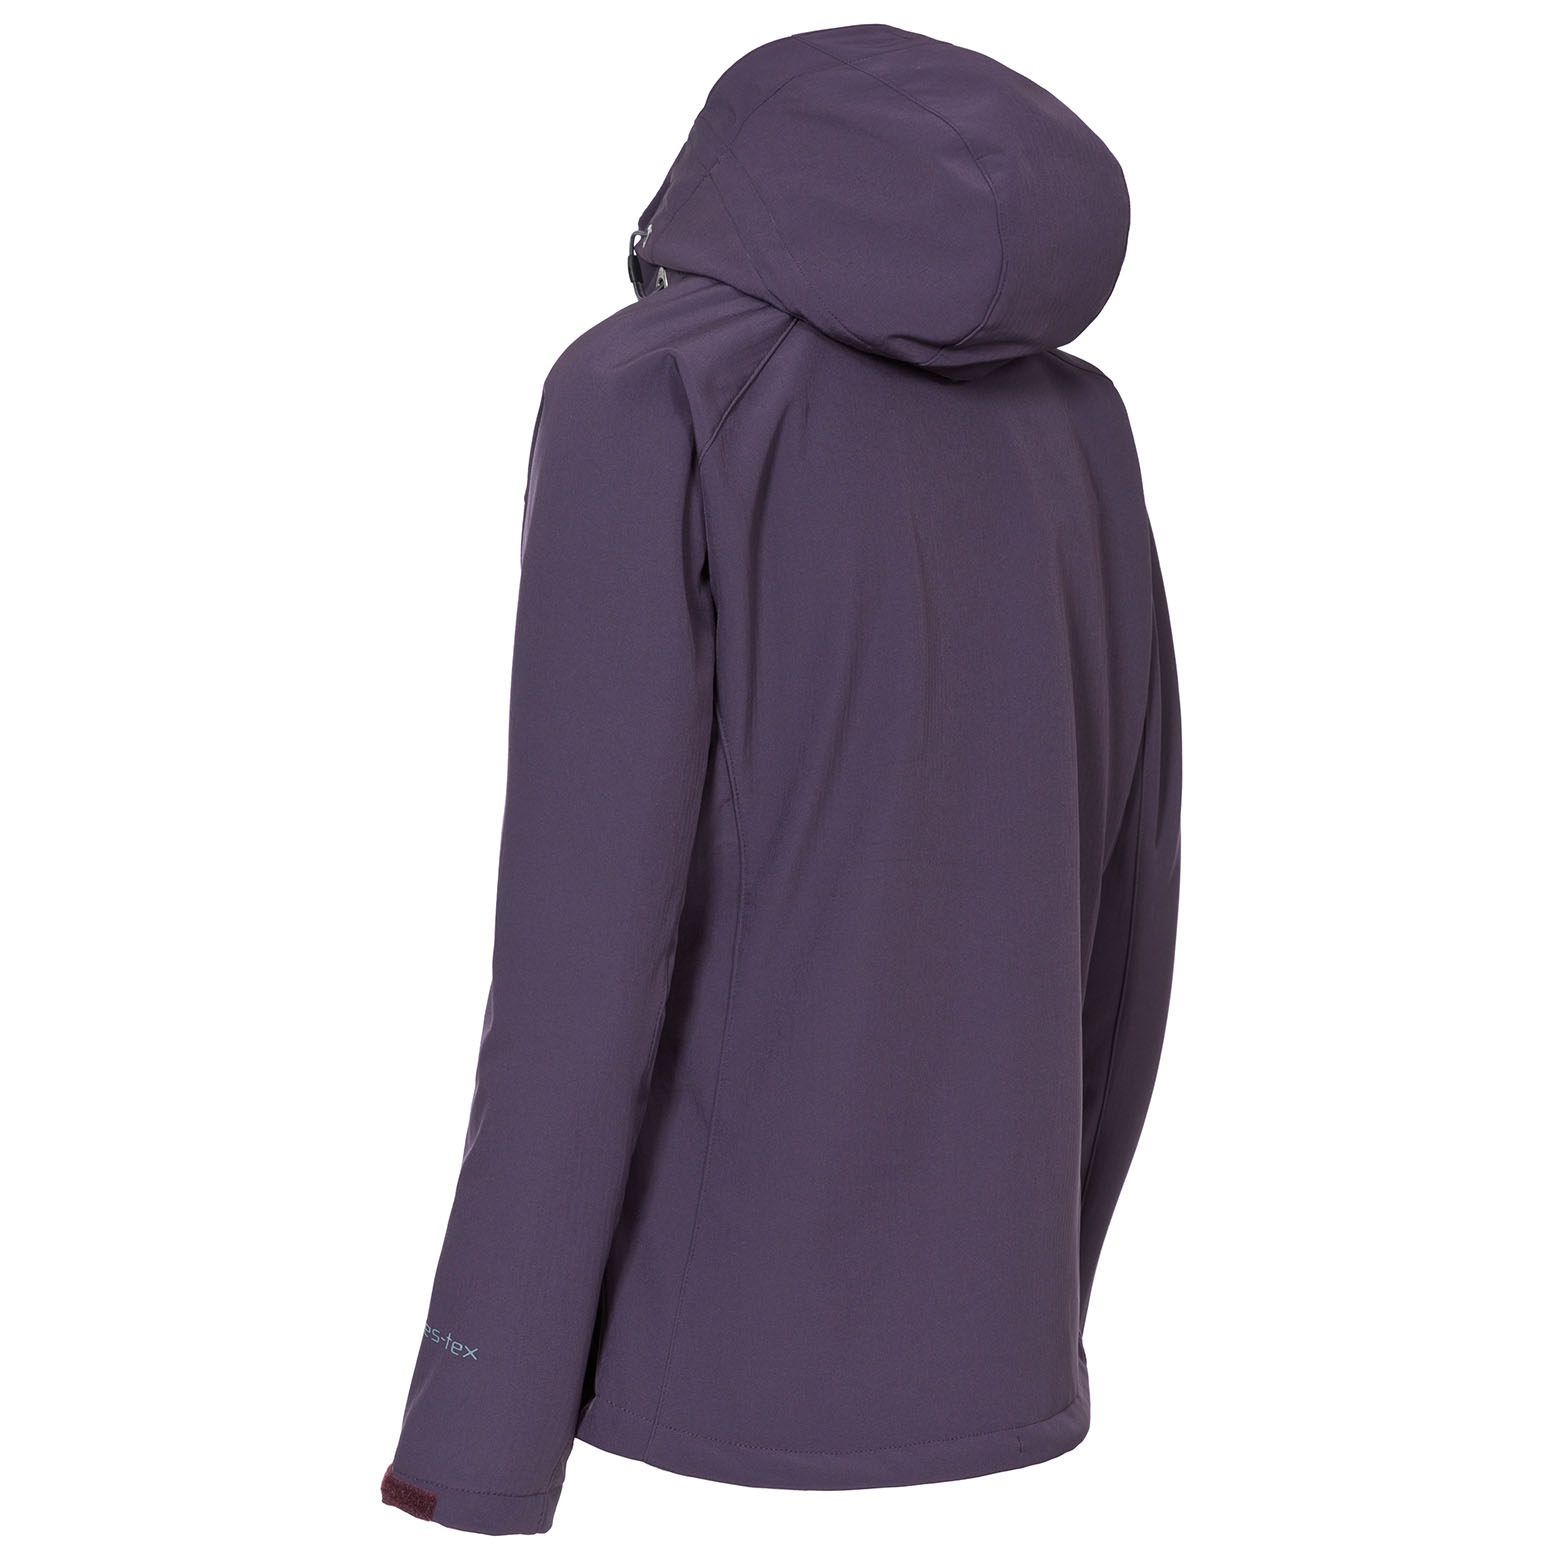 Trespass-Bela-Womens-Soft-Shell-Jacket-Breathable-in-Black-amp-Purple thumbnail 14